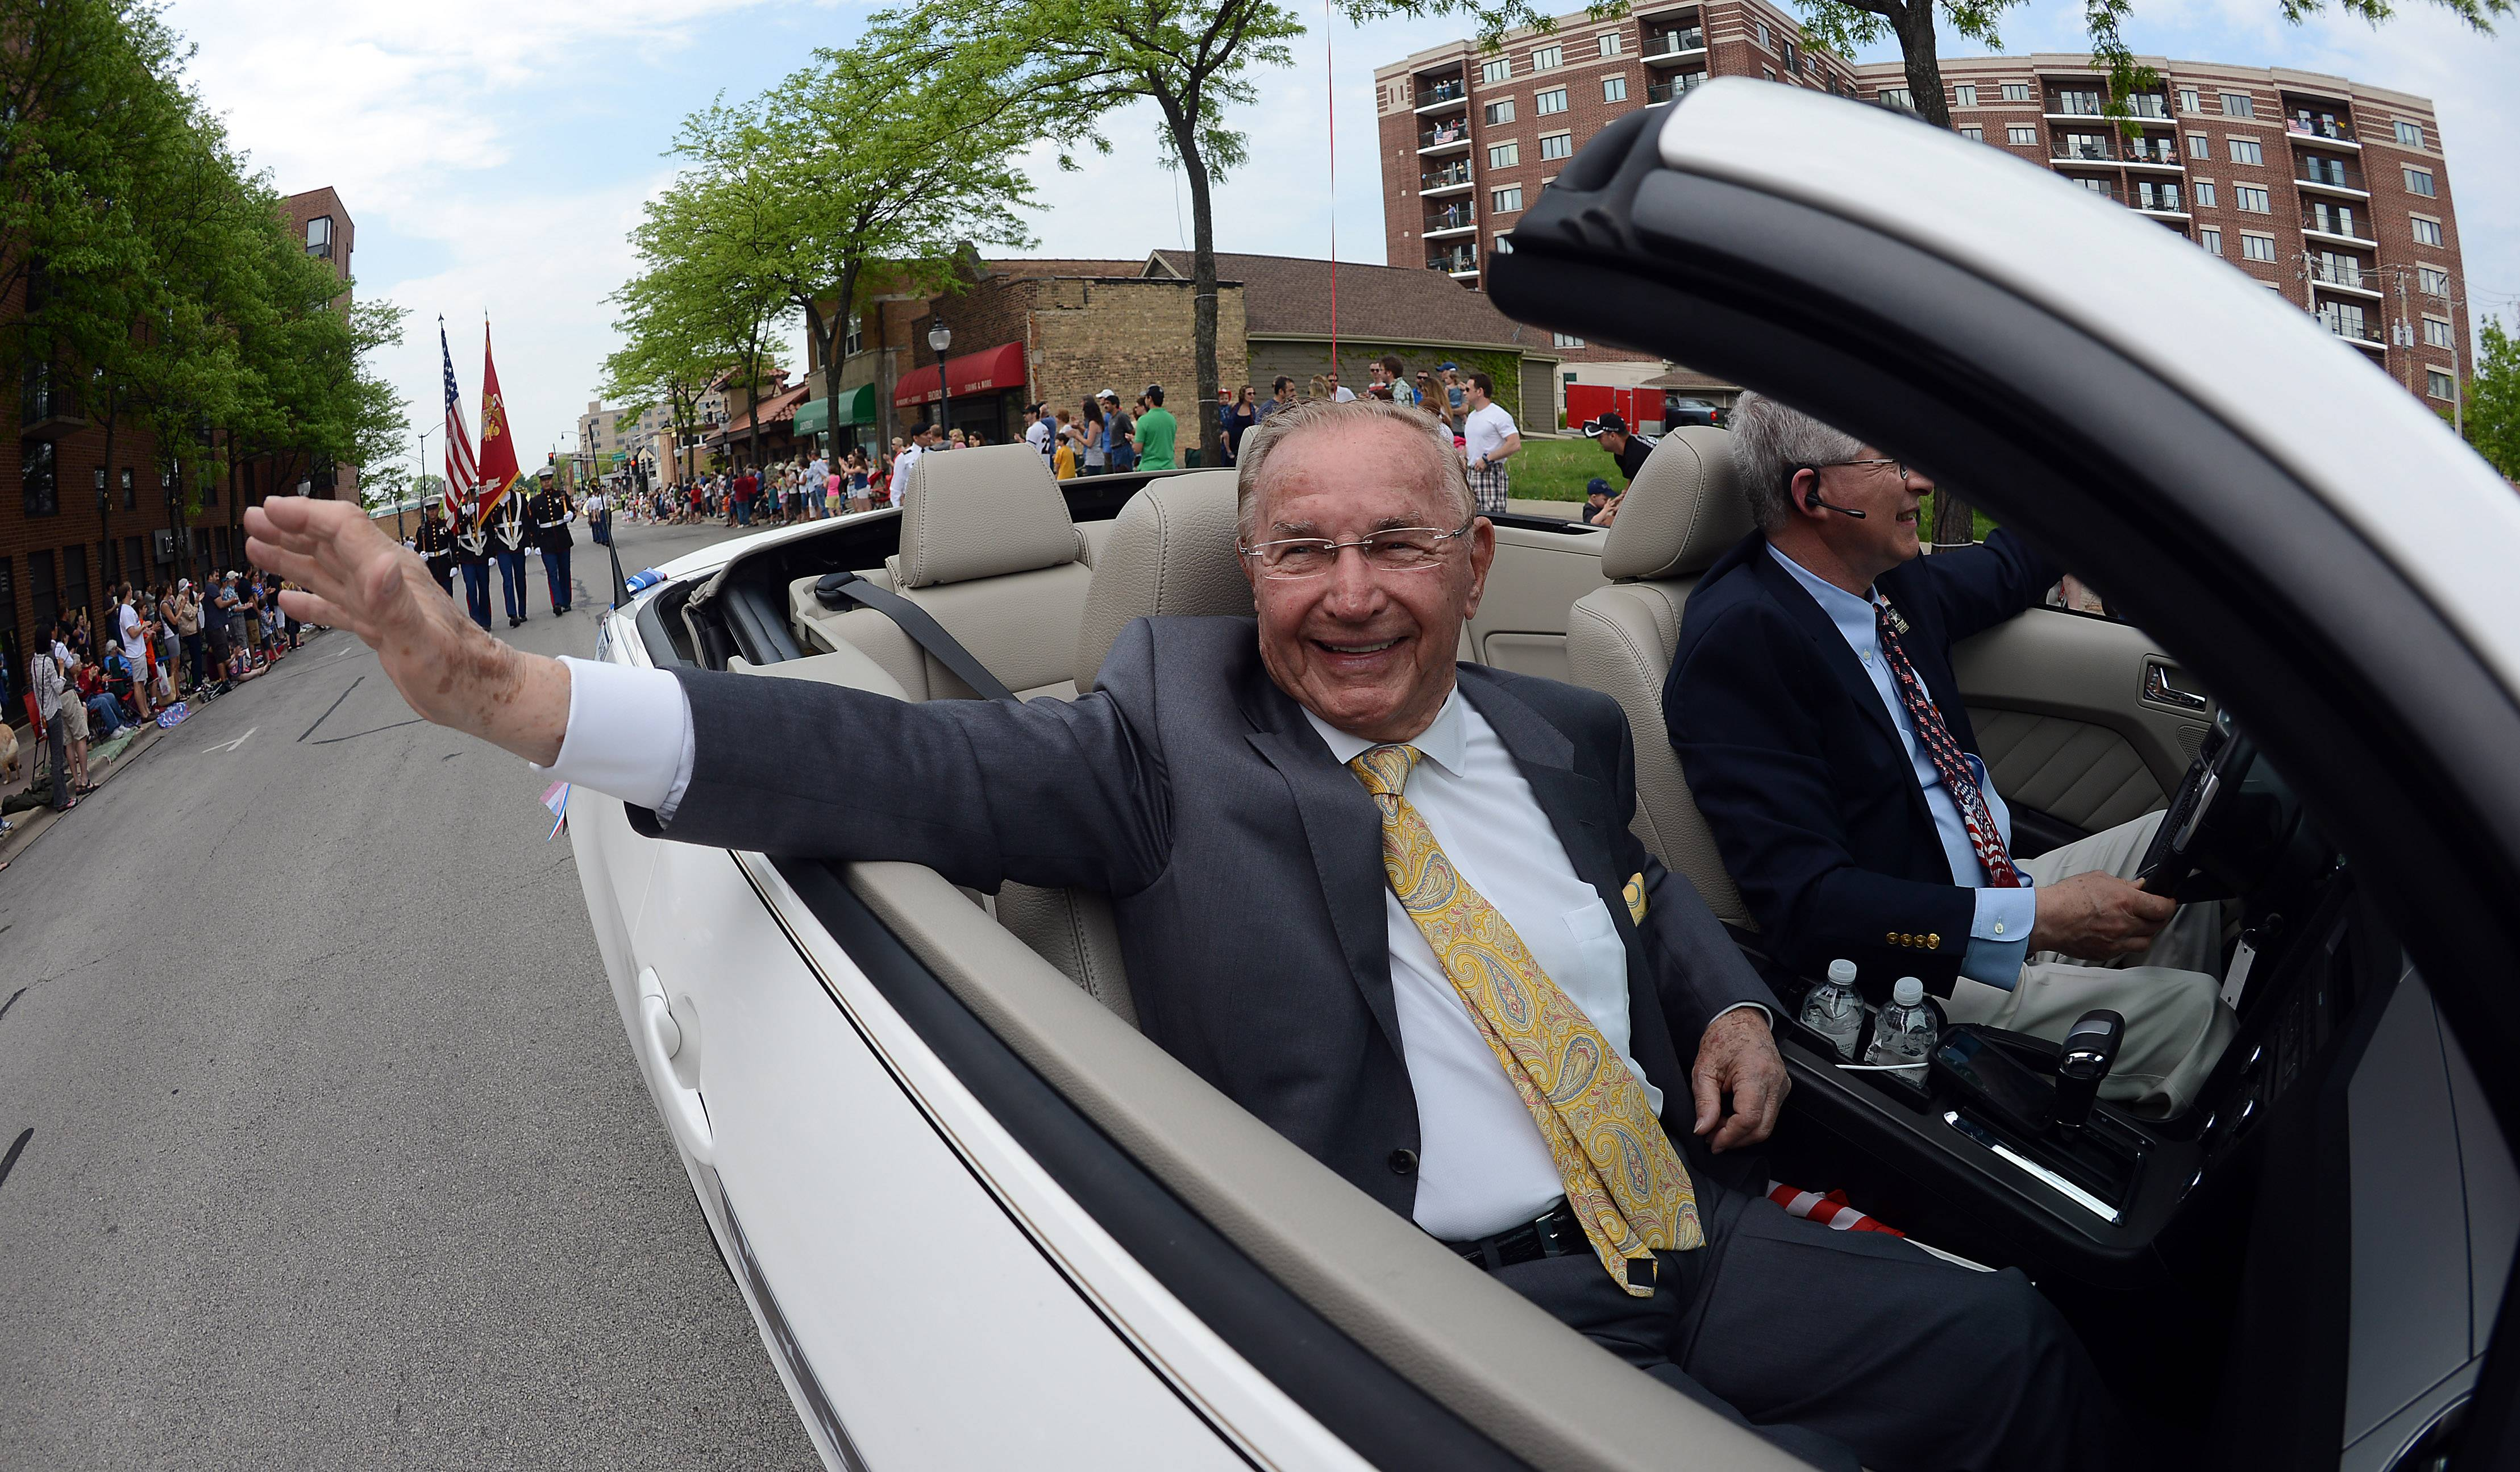 Richard Duchossois, grand marshall of the parade and World War II veteran waves to the people during the parade route in Arlington Heights on Memorial Day Monday.